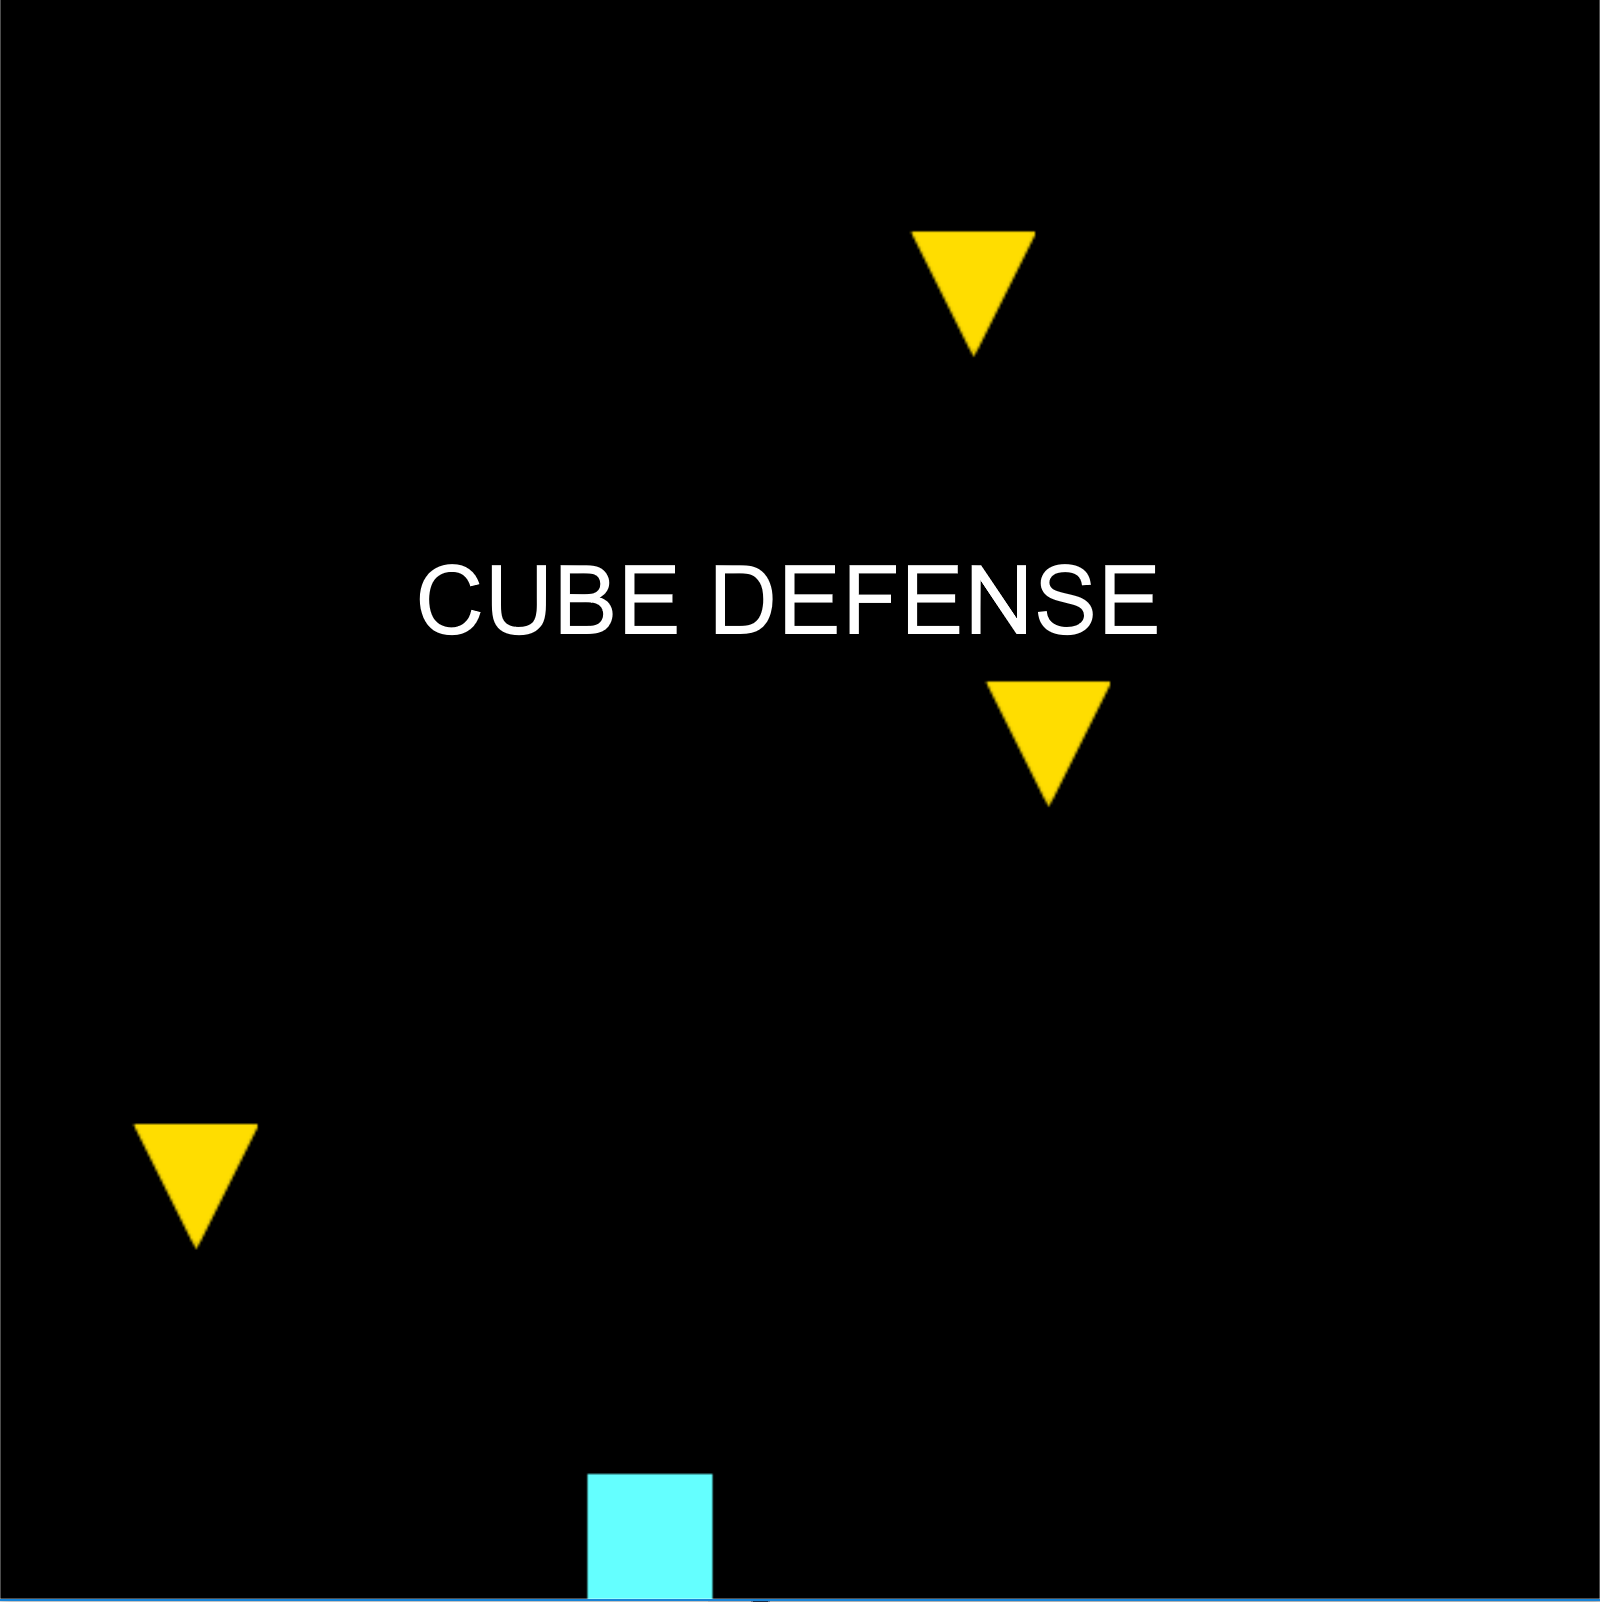 Cube Defense by rsbat